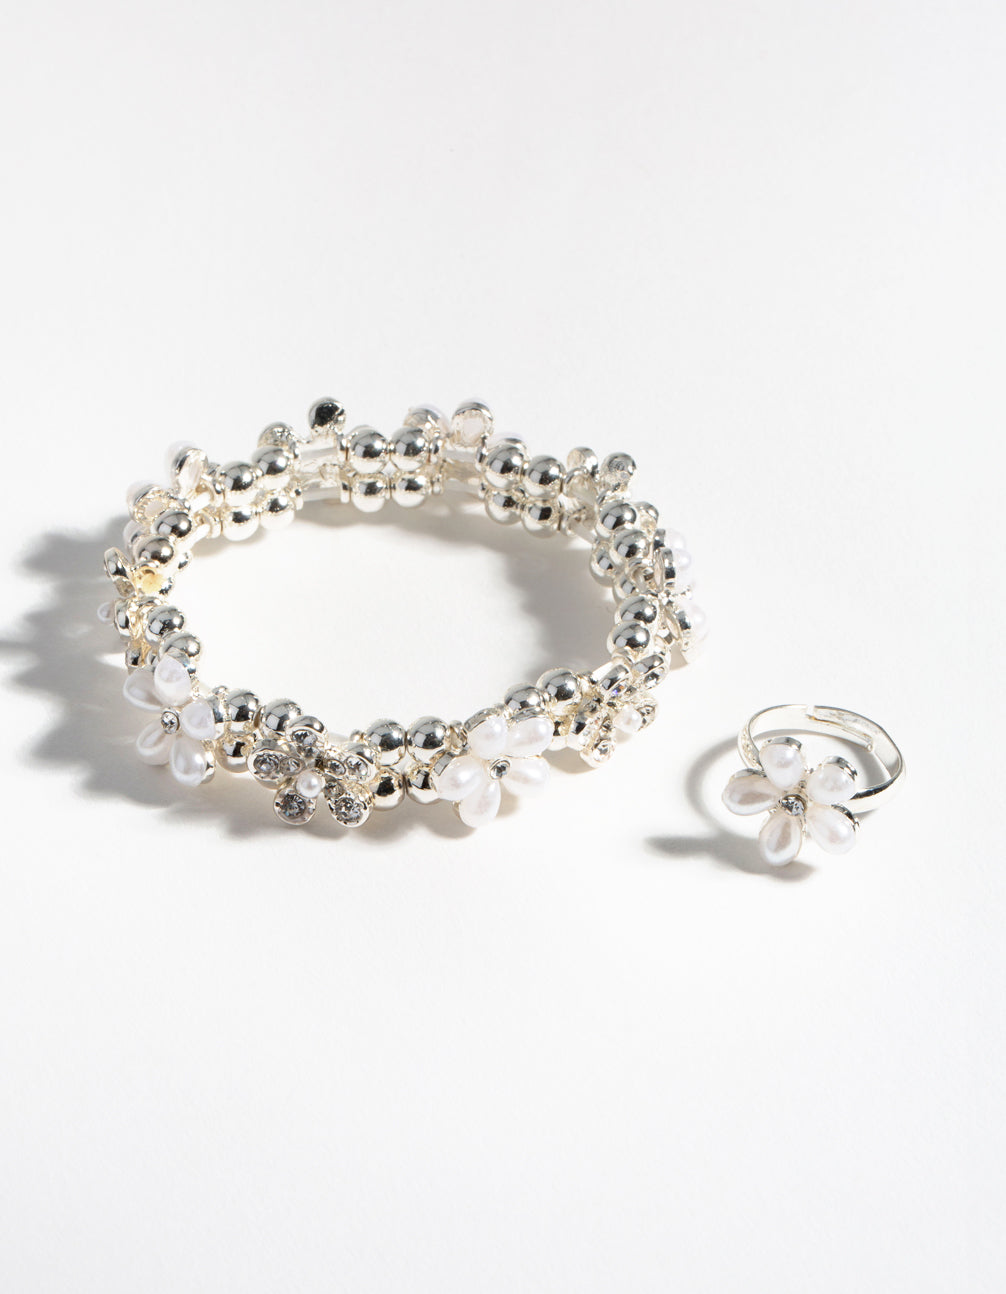 Silver Flower Bracelet and Ring Pack